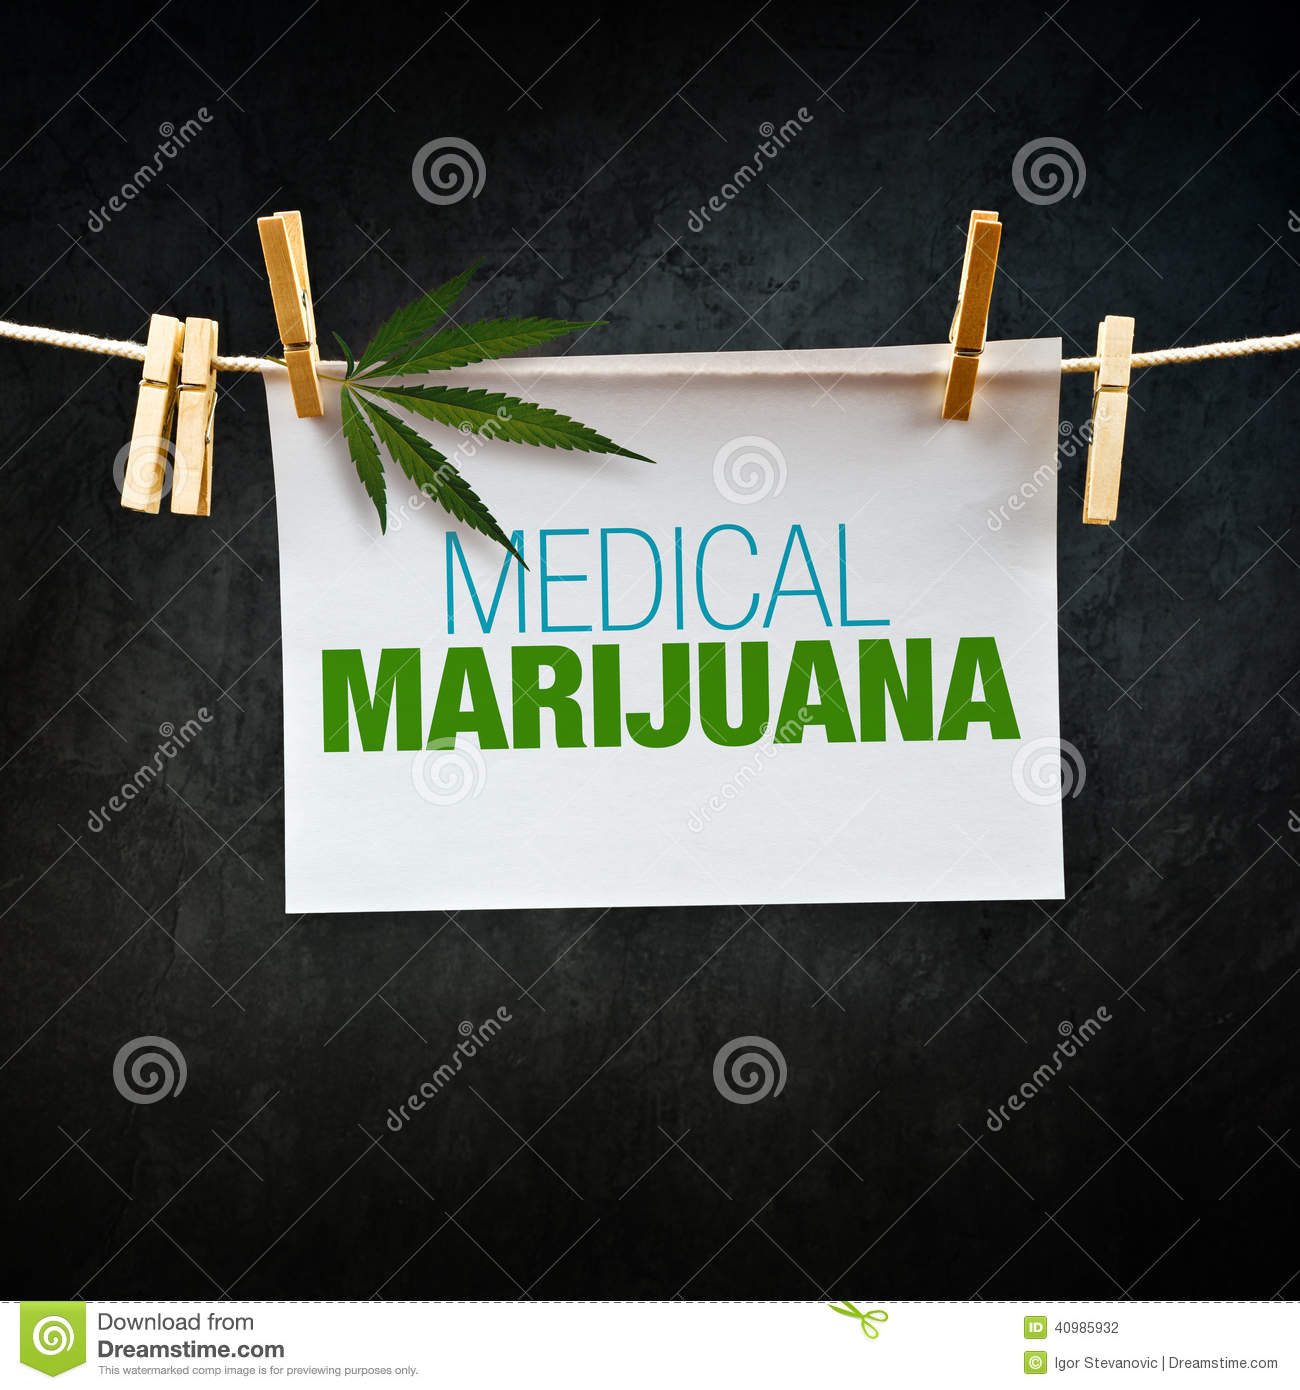 medicinal marijuana essays Legalizing marijuana for medicinal purposes has been an should marijuana be legalized for medicinal purposes essay but a and b essays are only available.